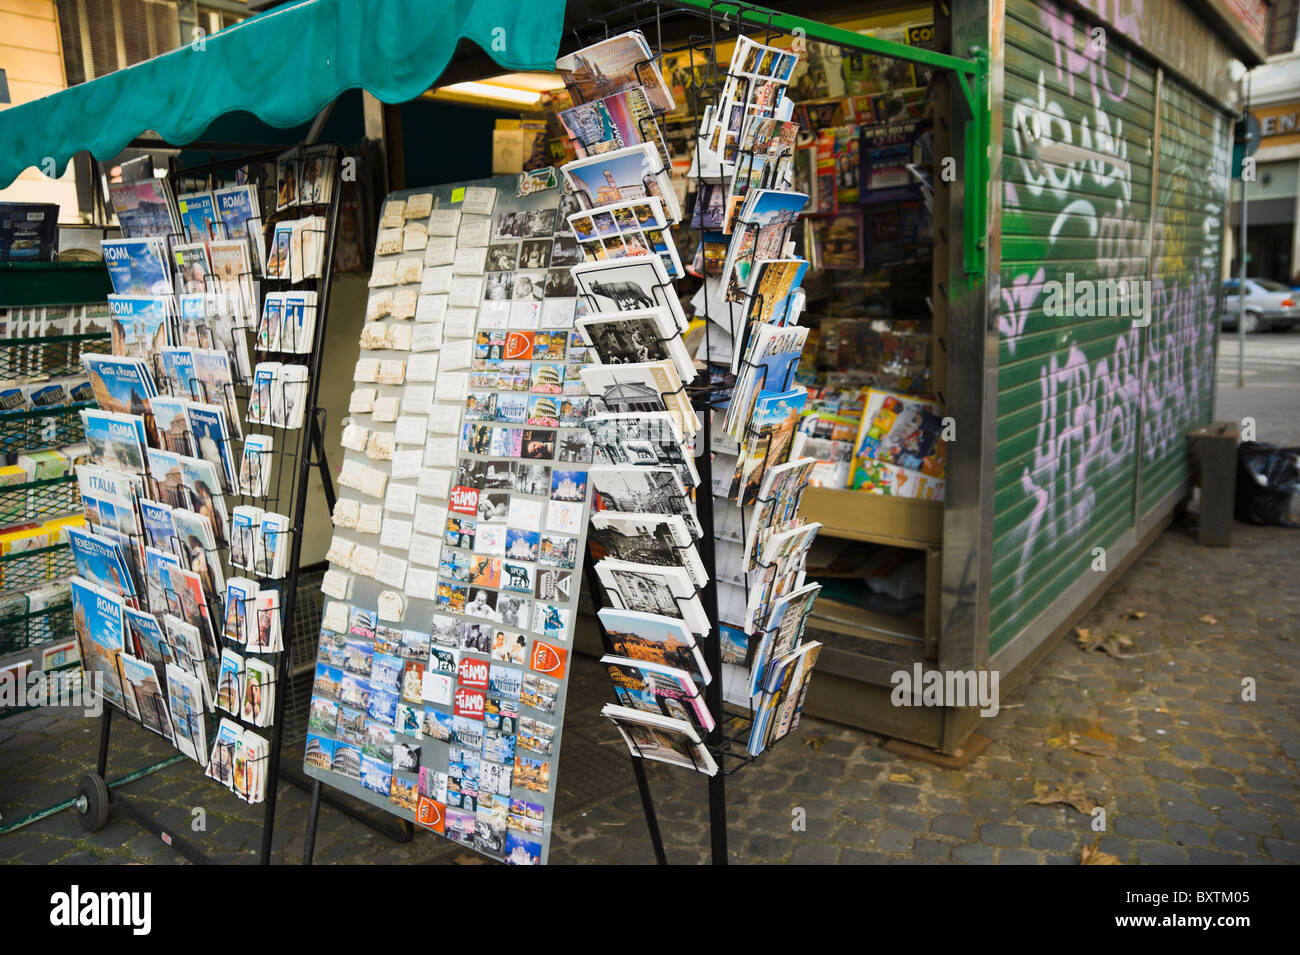 Rome, newsagent kiosk selling postcards, stickers and tourist guides. - Stock Image